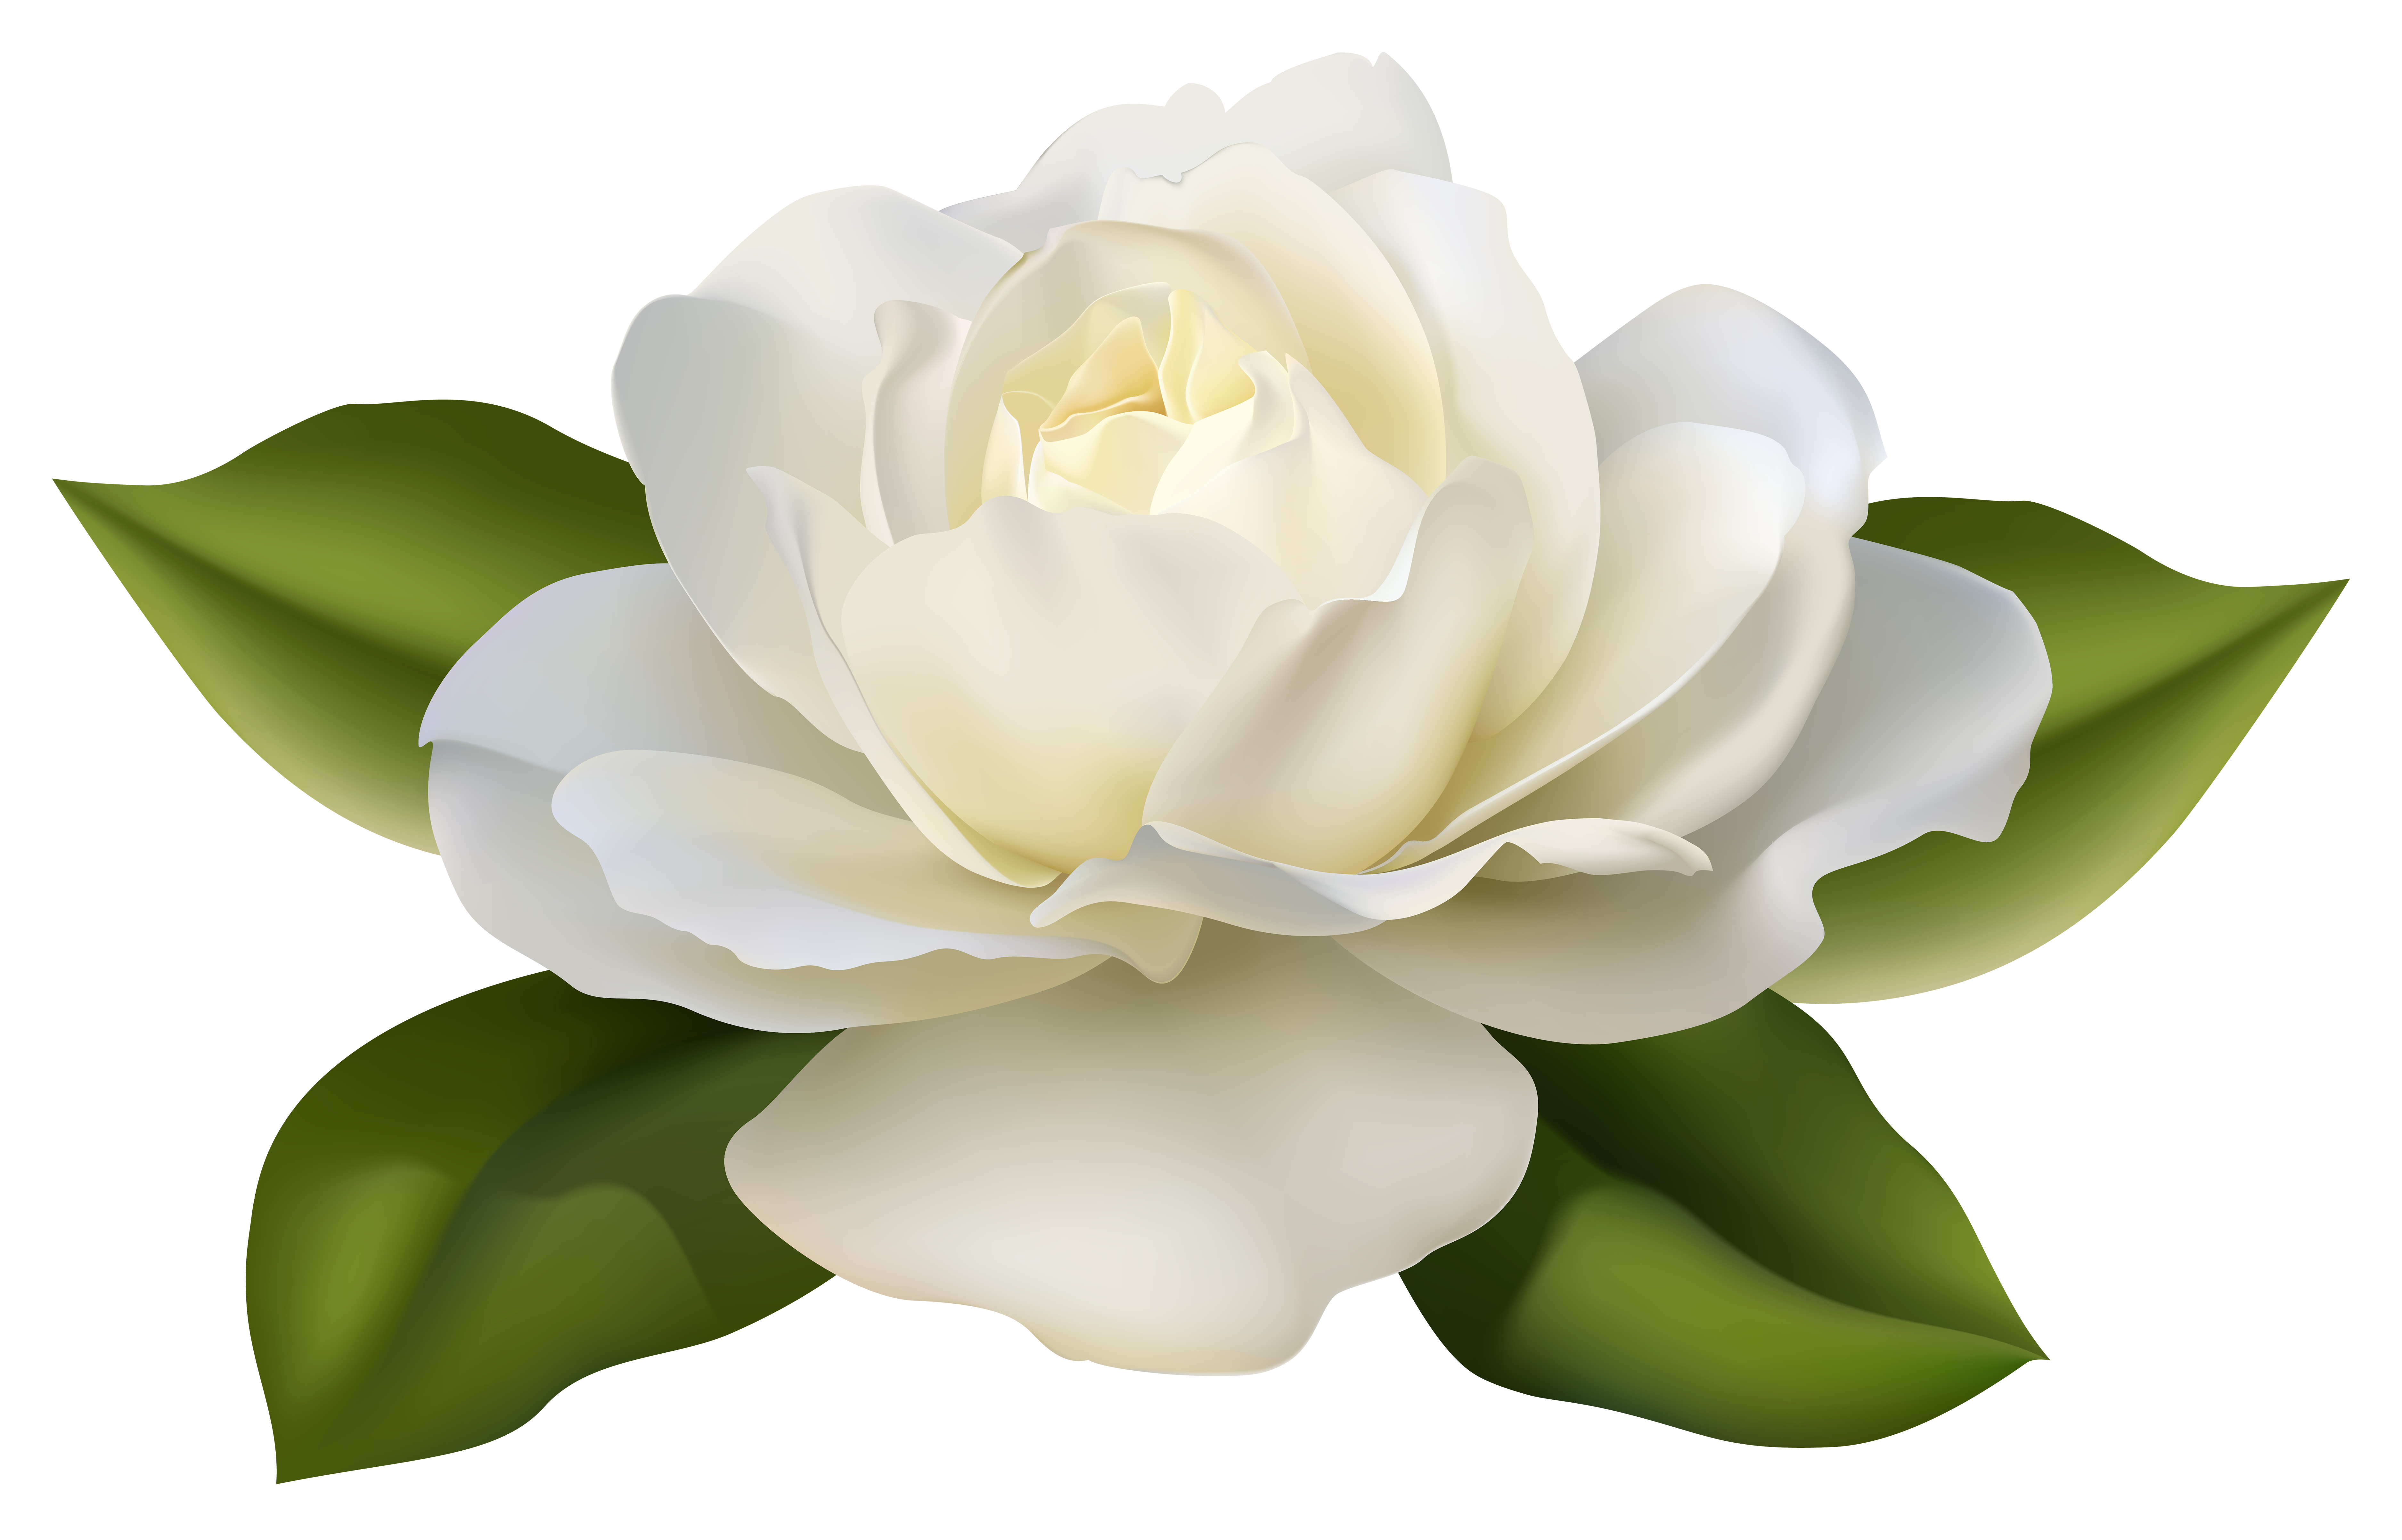 Rose leaves png. Beautiful white with image